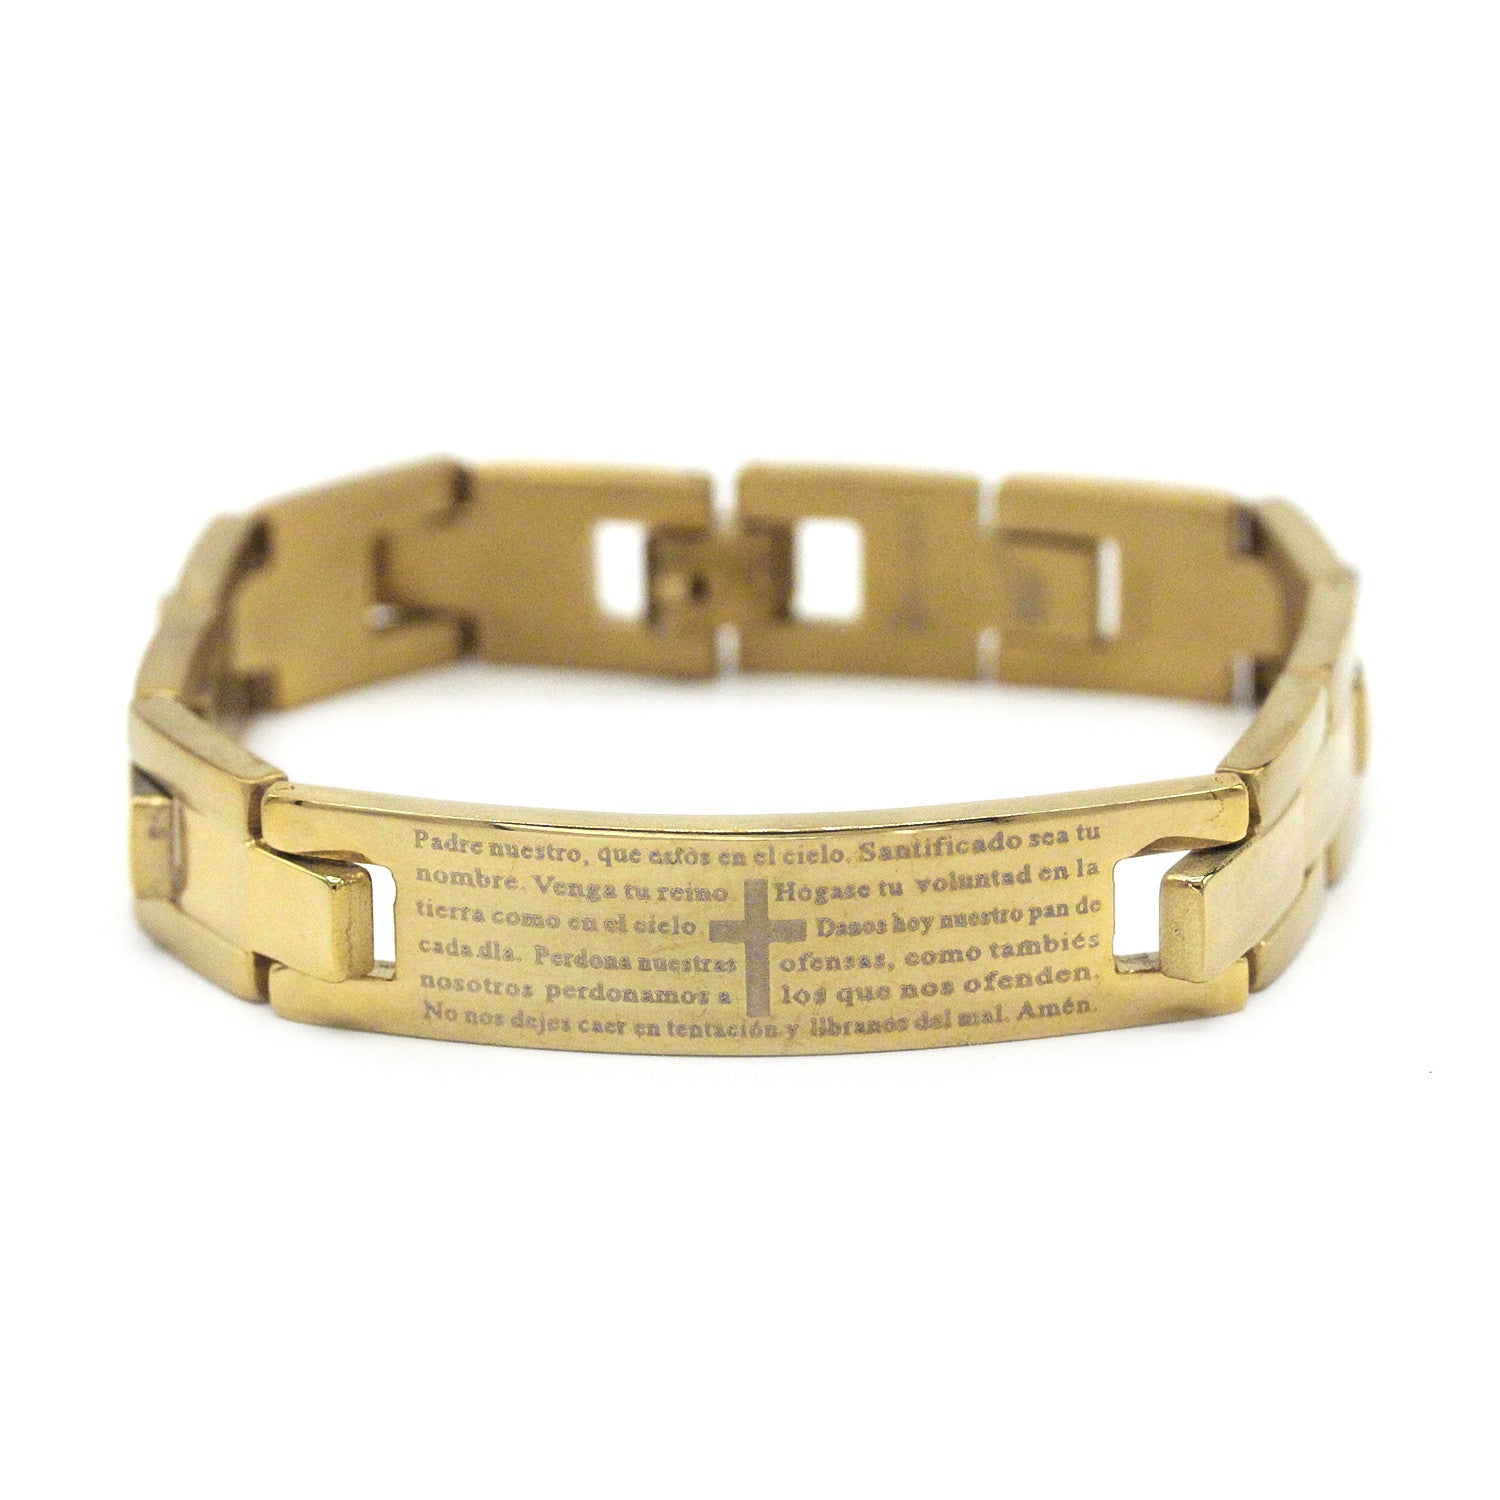 Decorative Men's Stainless Steel ID Bracelet Lord's Prayer en Español (Gold)